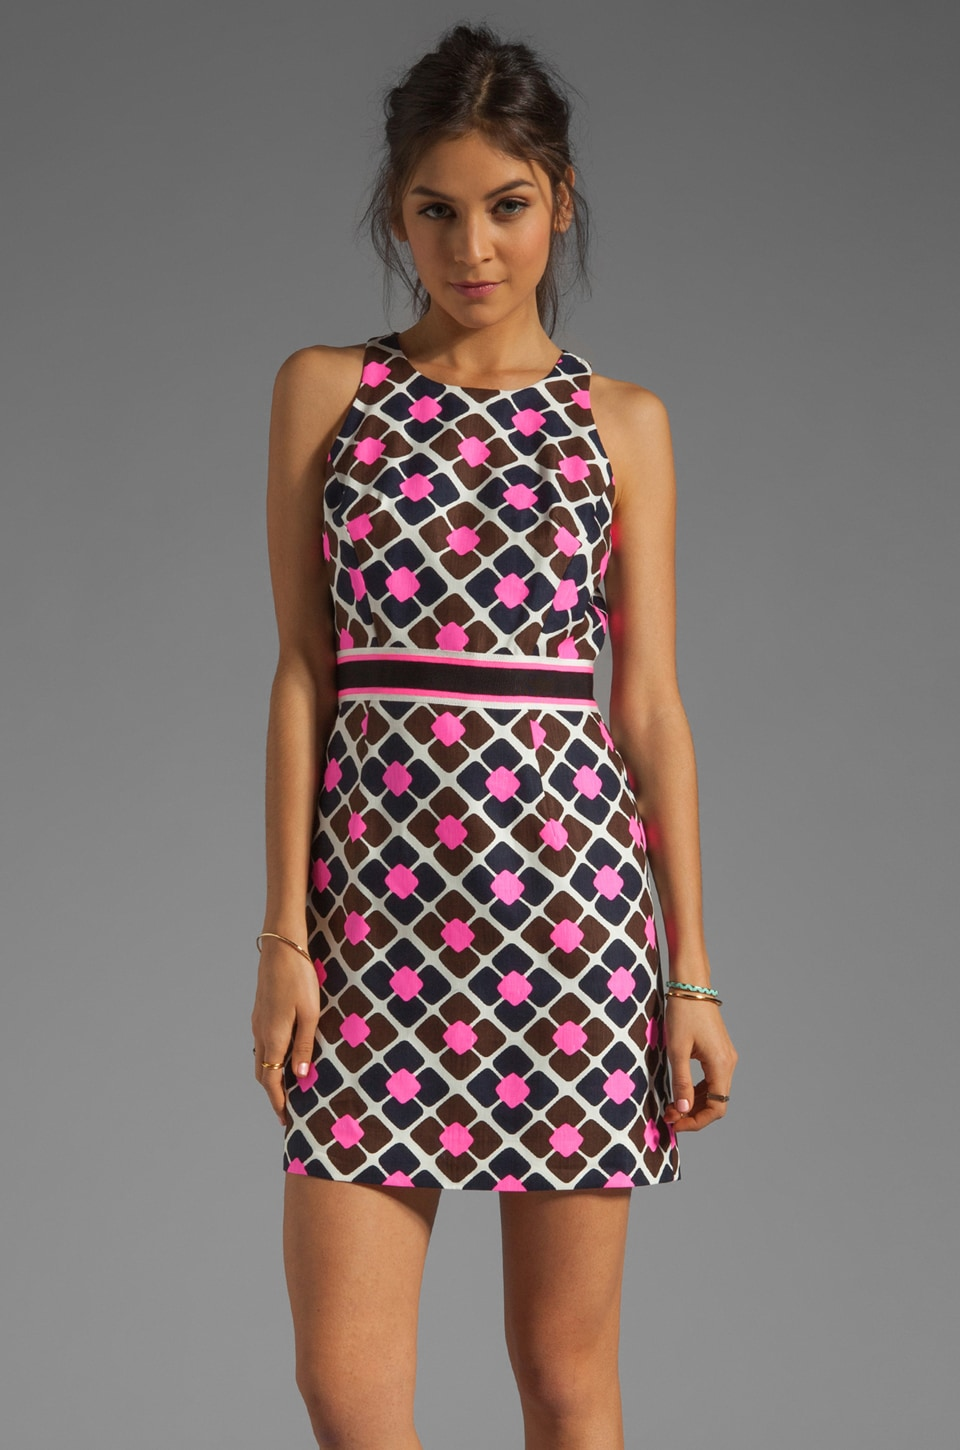 MILLY Anna Tile Print on Silk Linen Sheath Dress in Shocking Pink